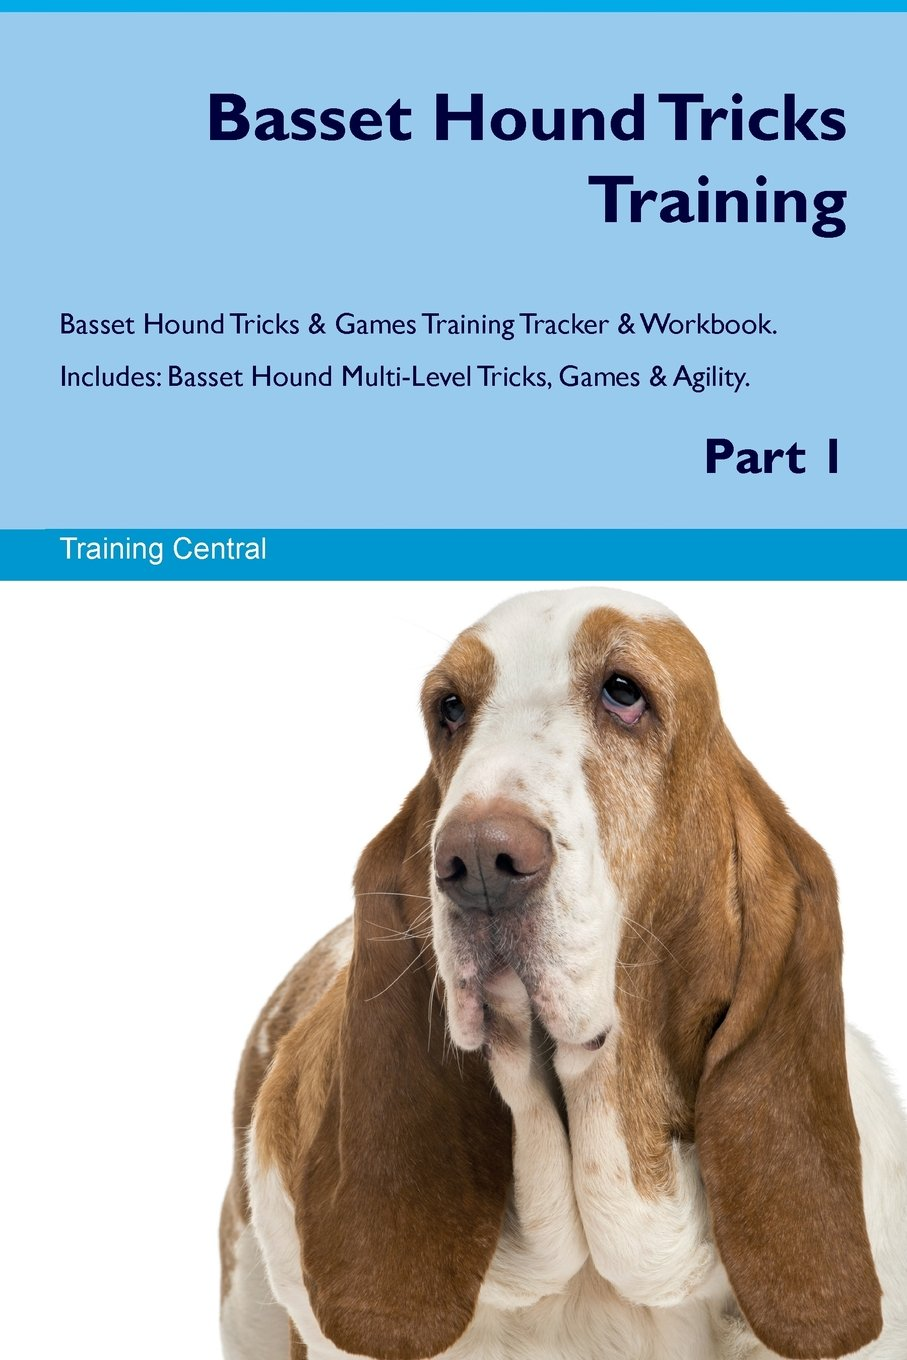 Basset Hound Tricks Training Basset Hound Tricks & Games Training Tracker & Workbook.  Includes: Basset Hound Multi-Level Tricks, Games & Agility. Part 1